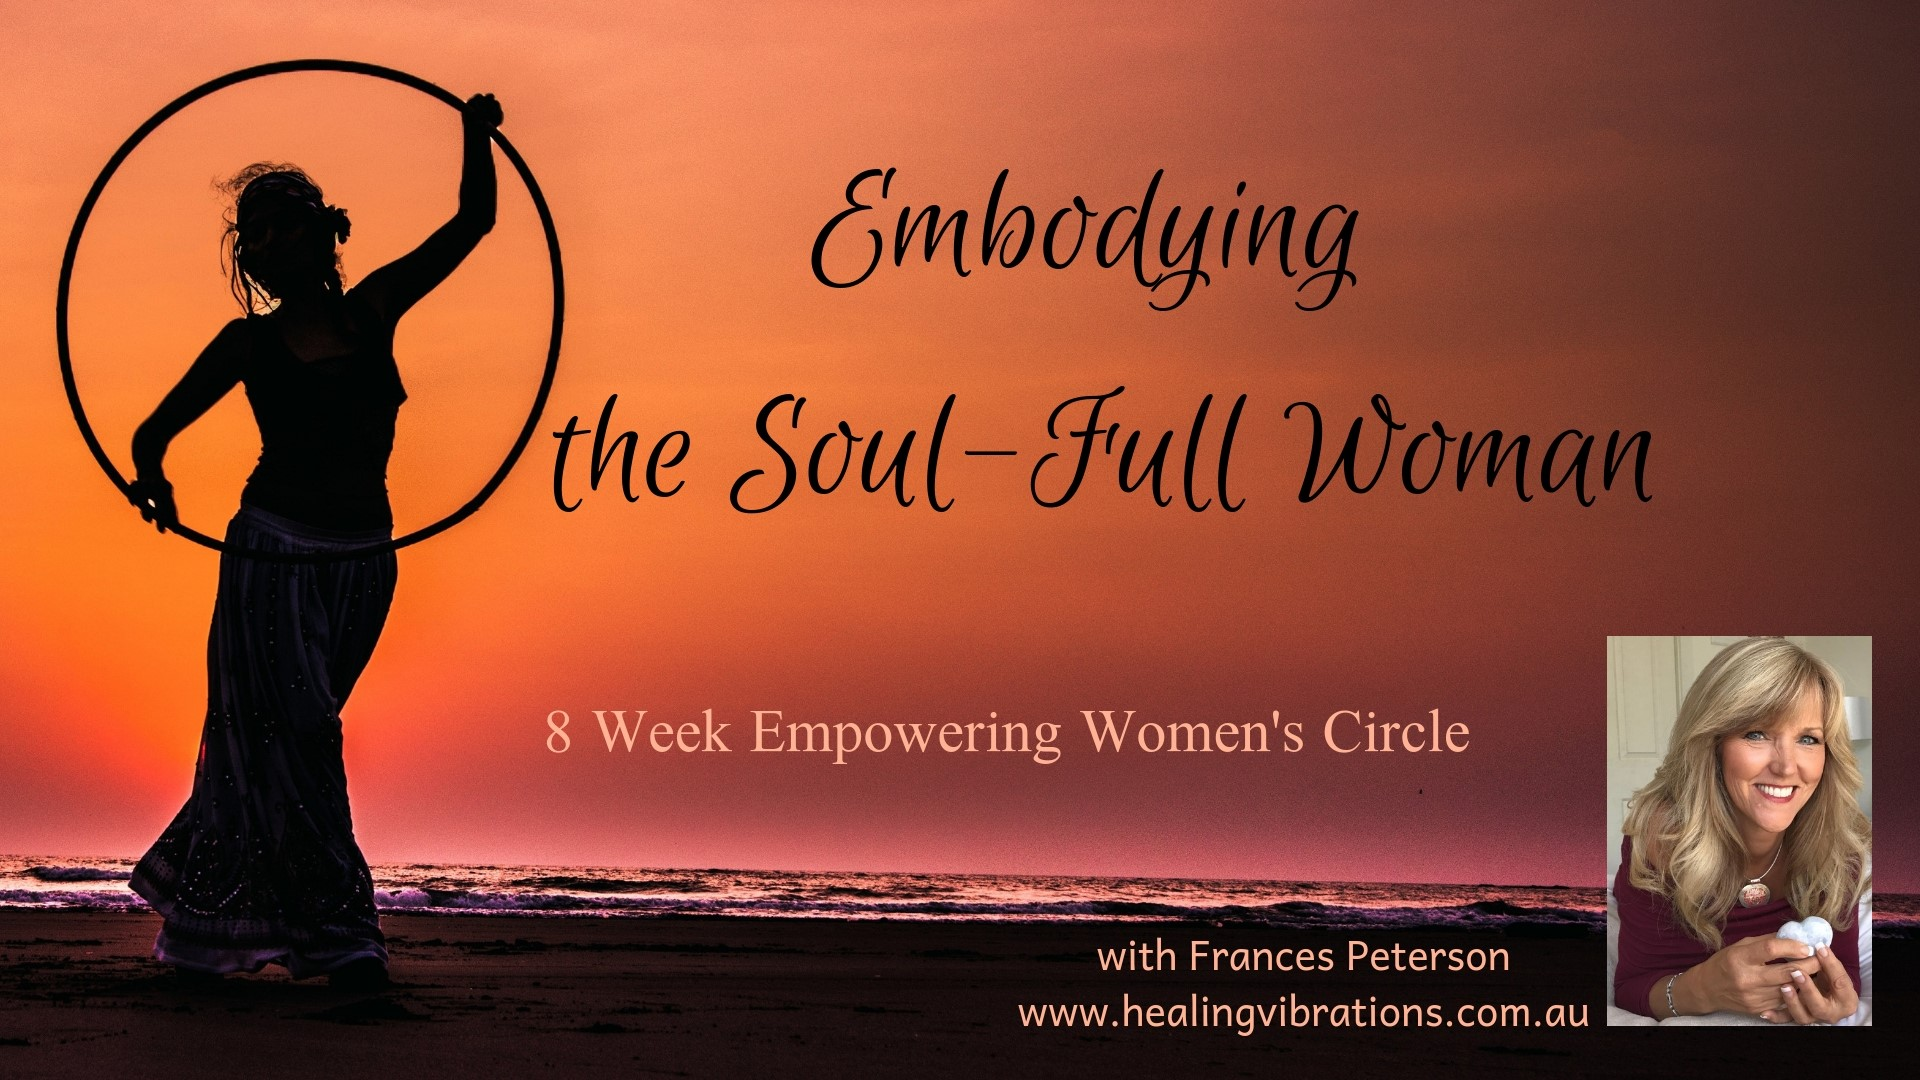 Embodying the Soul-Full Woman - 8 Week Women's Circle